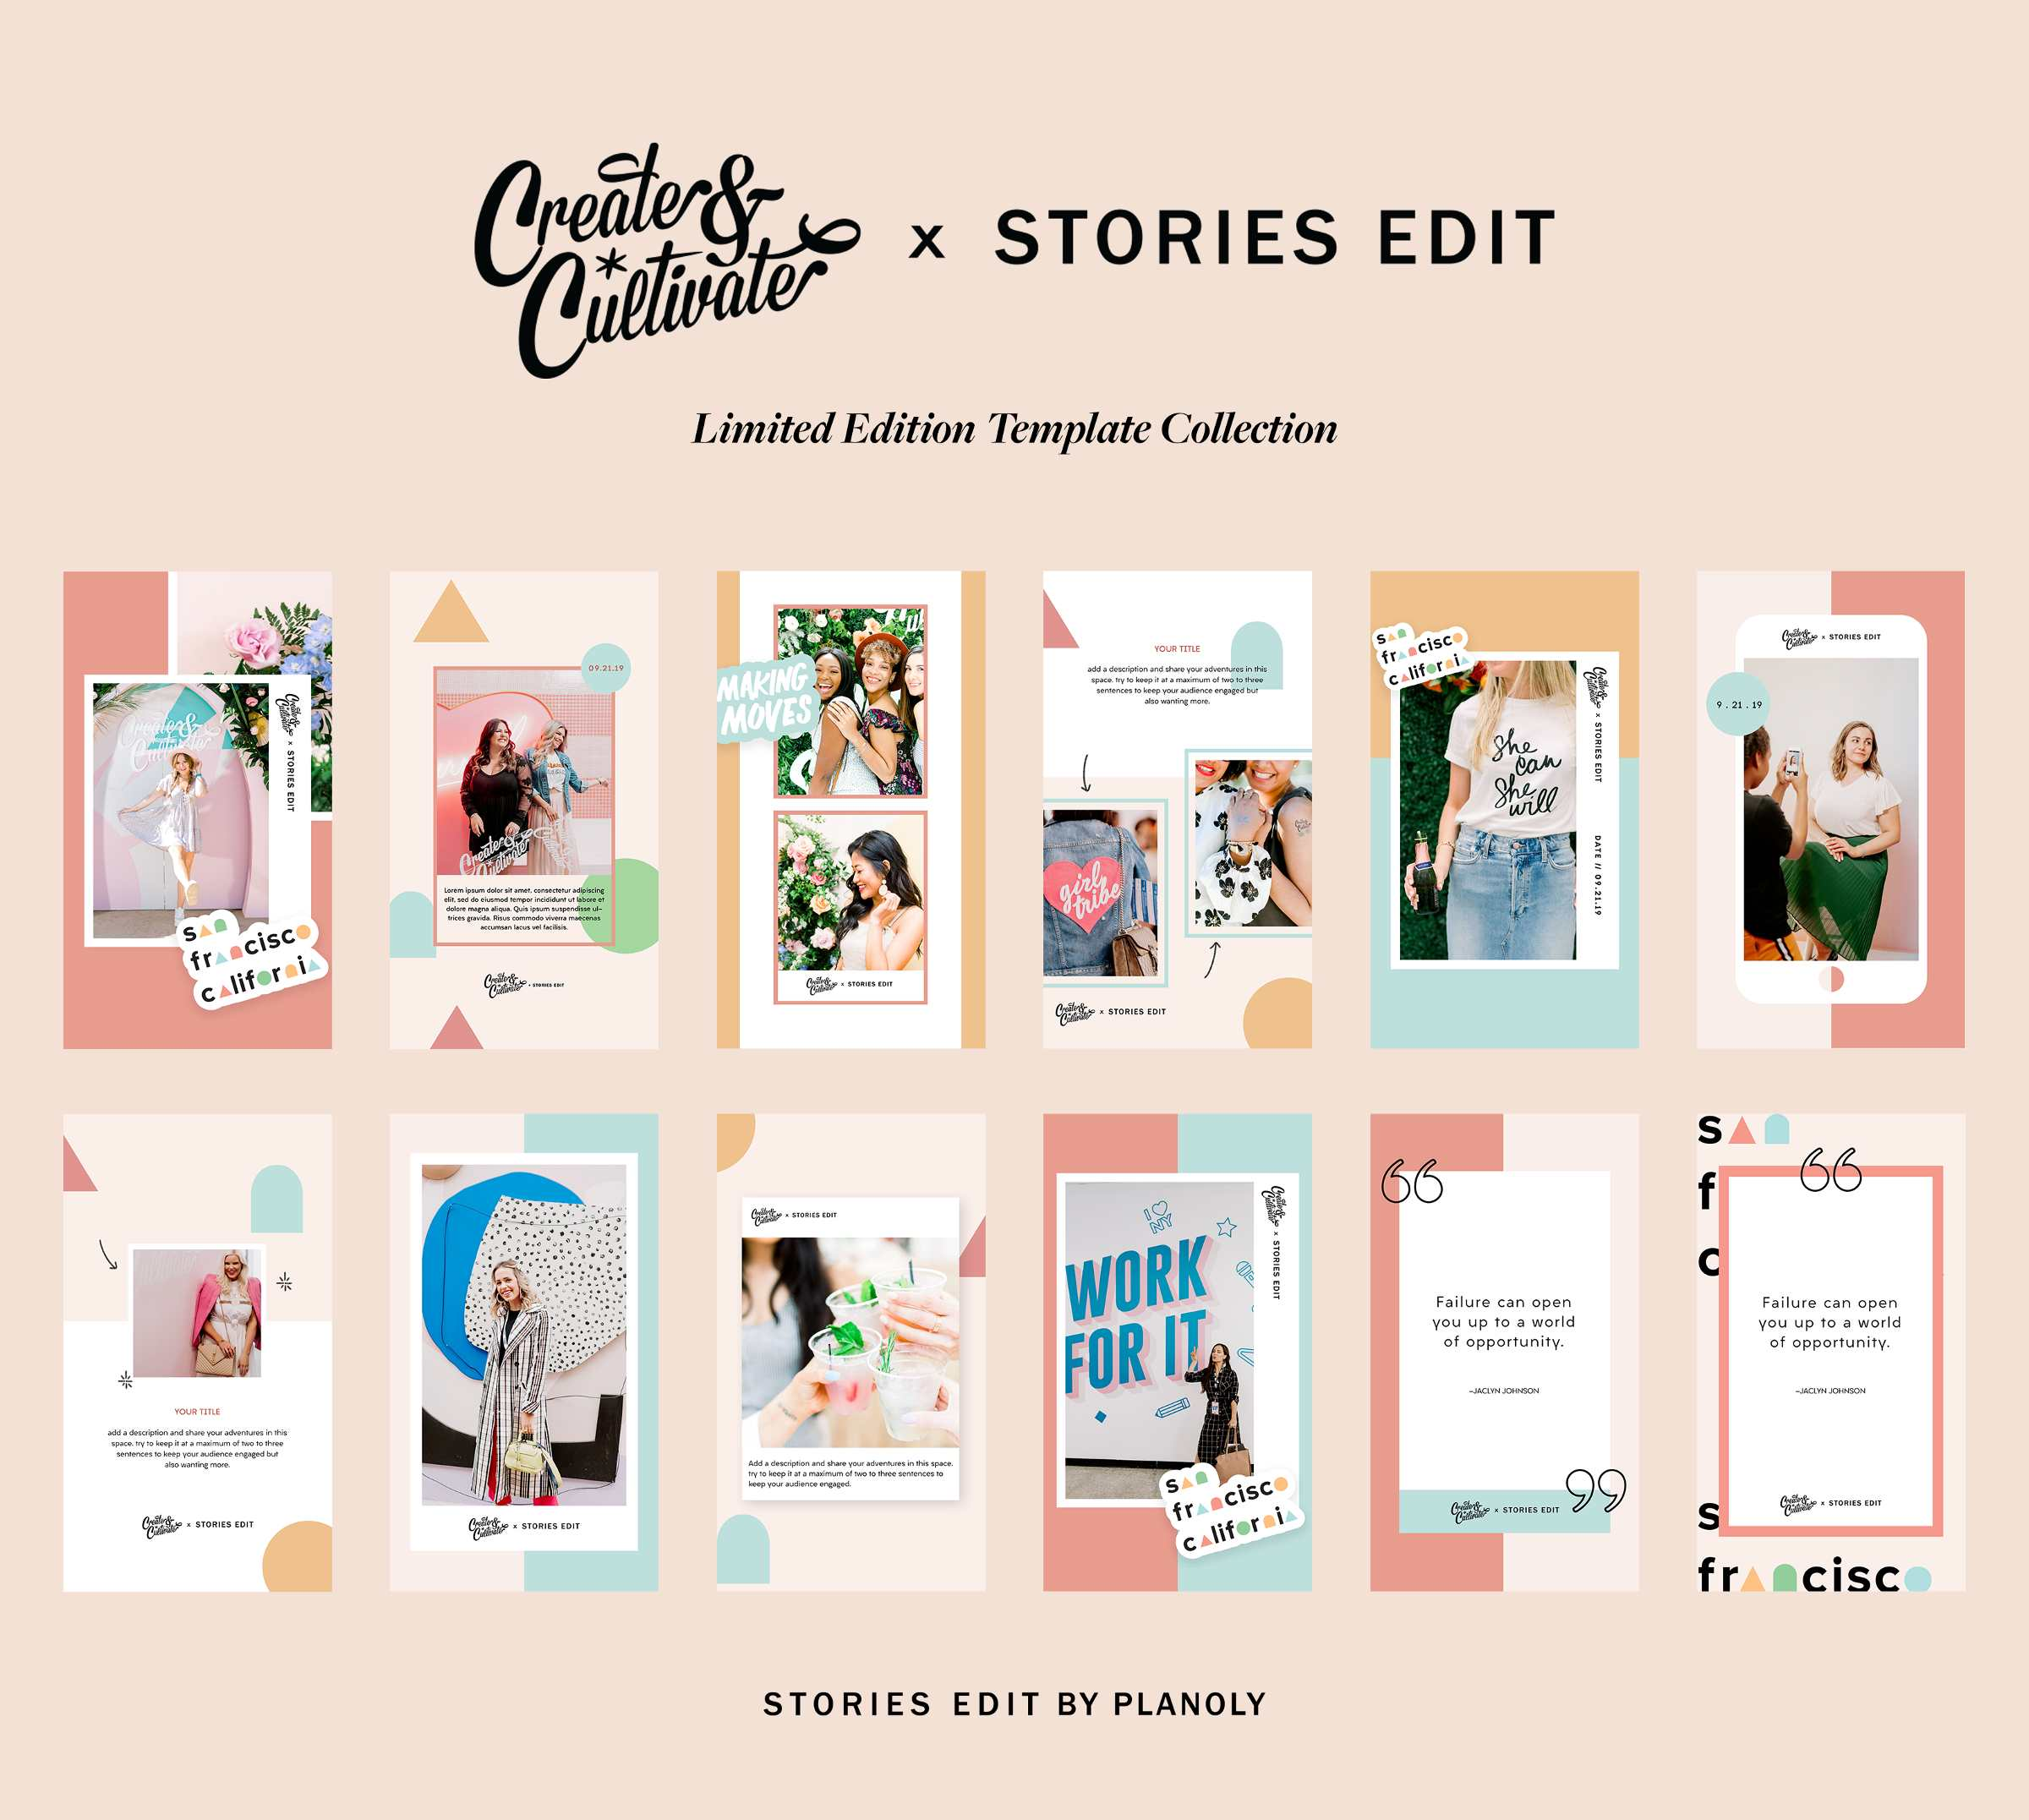 Planoly-Blog-Post-StoriesEdit-x-Create-Cultivate-Collection-Image-1-v2-2